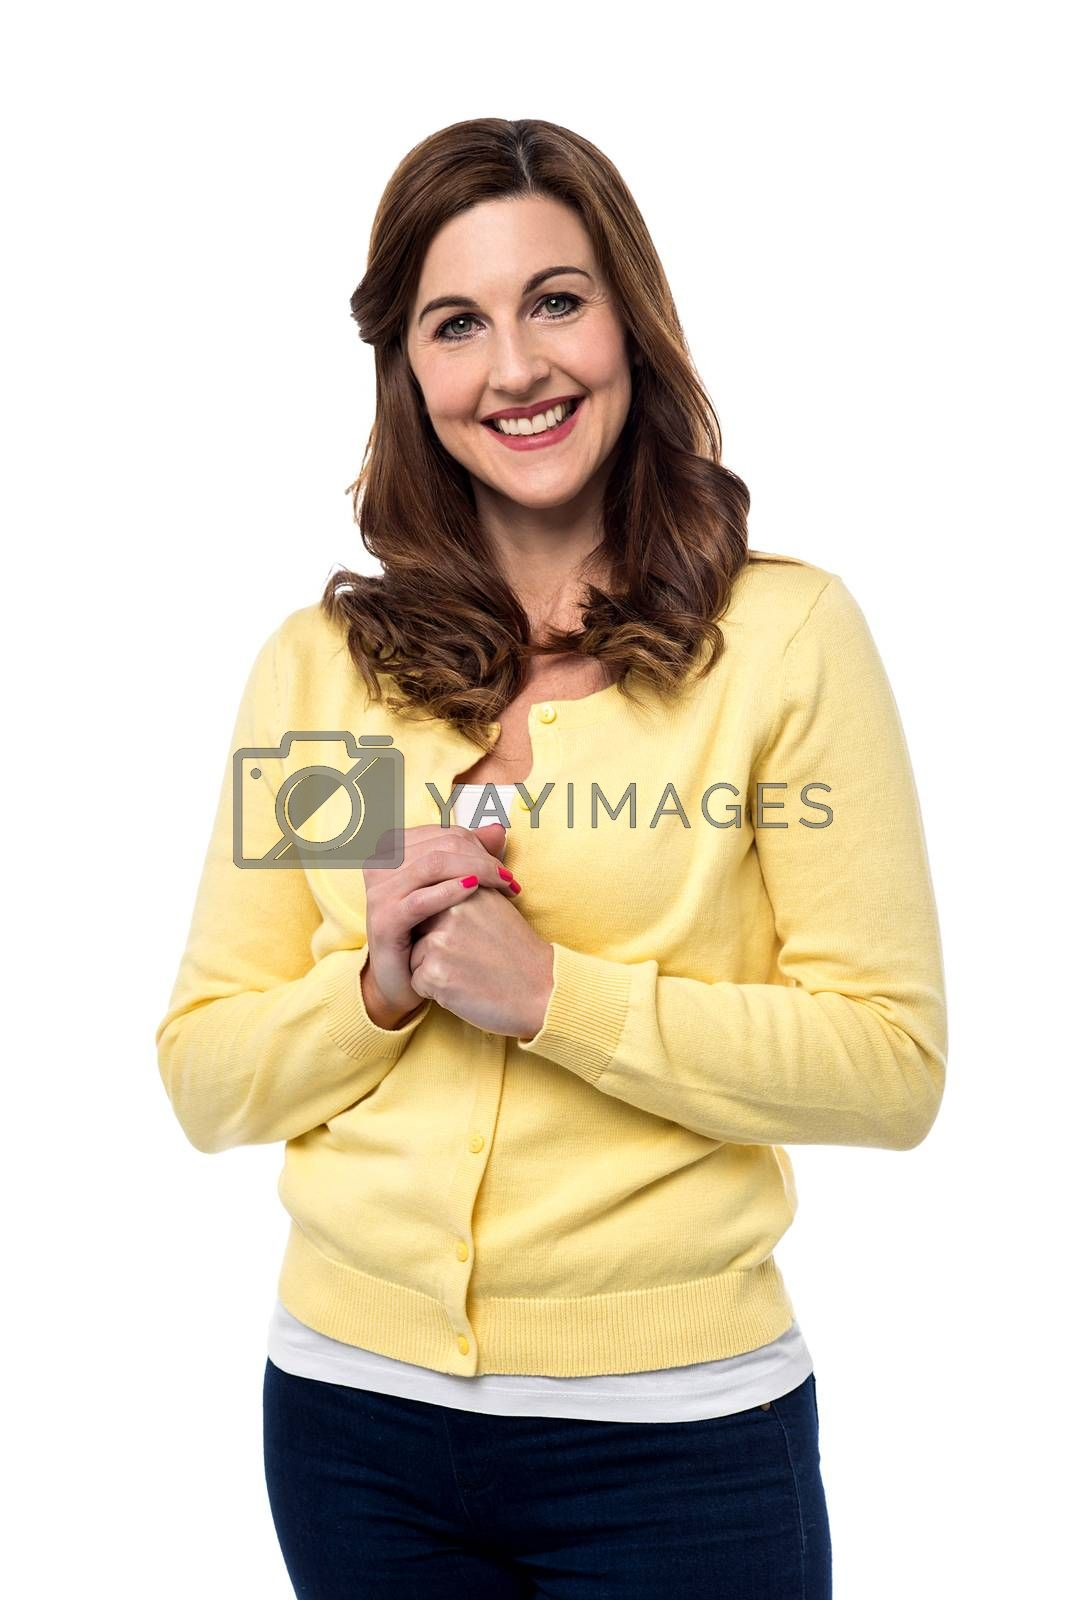 Smiling mid woman welcoming with clasped hands